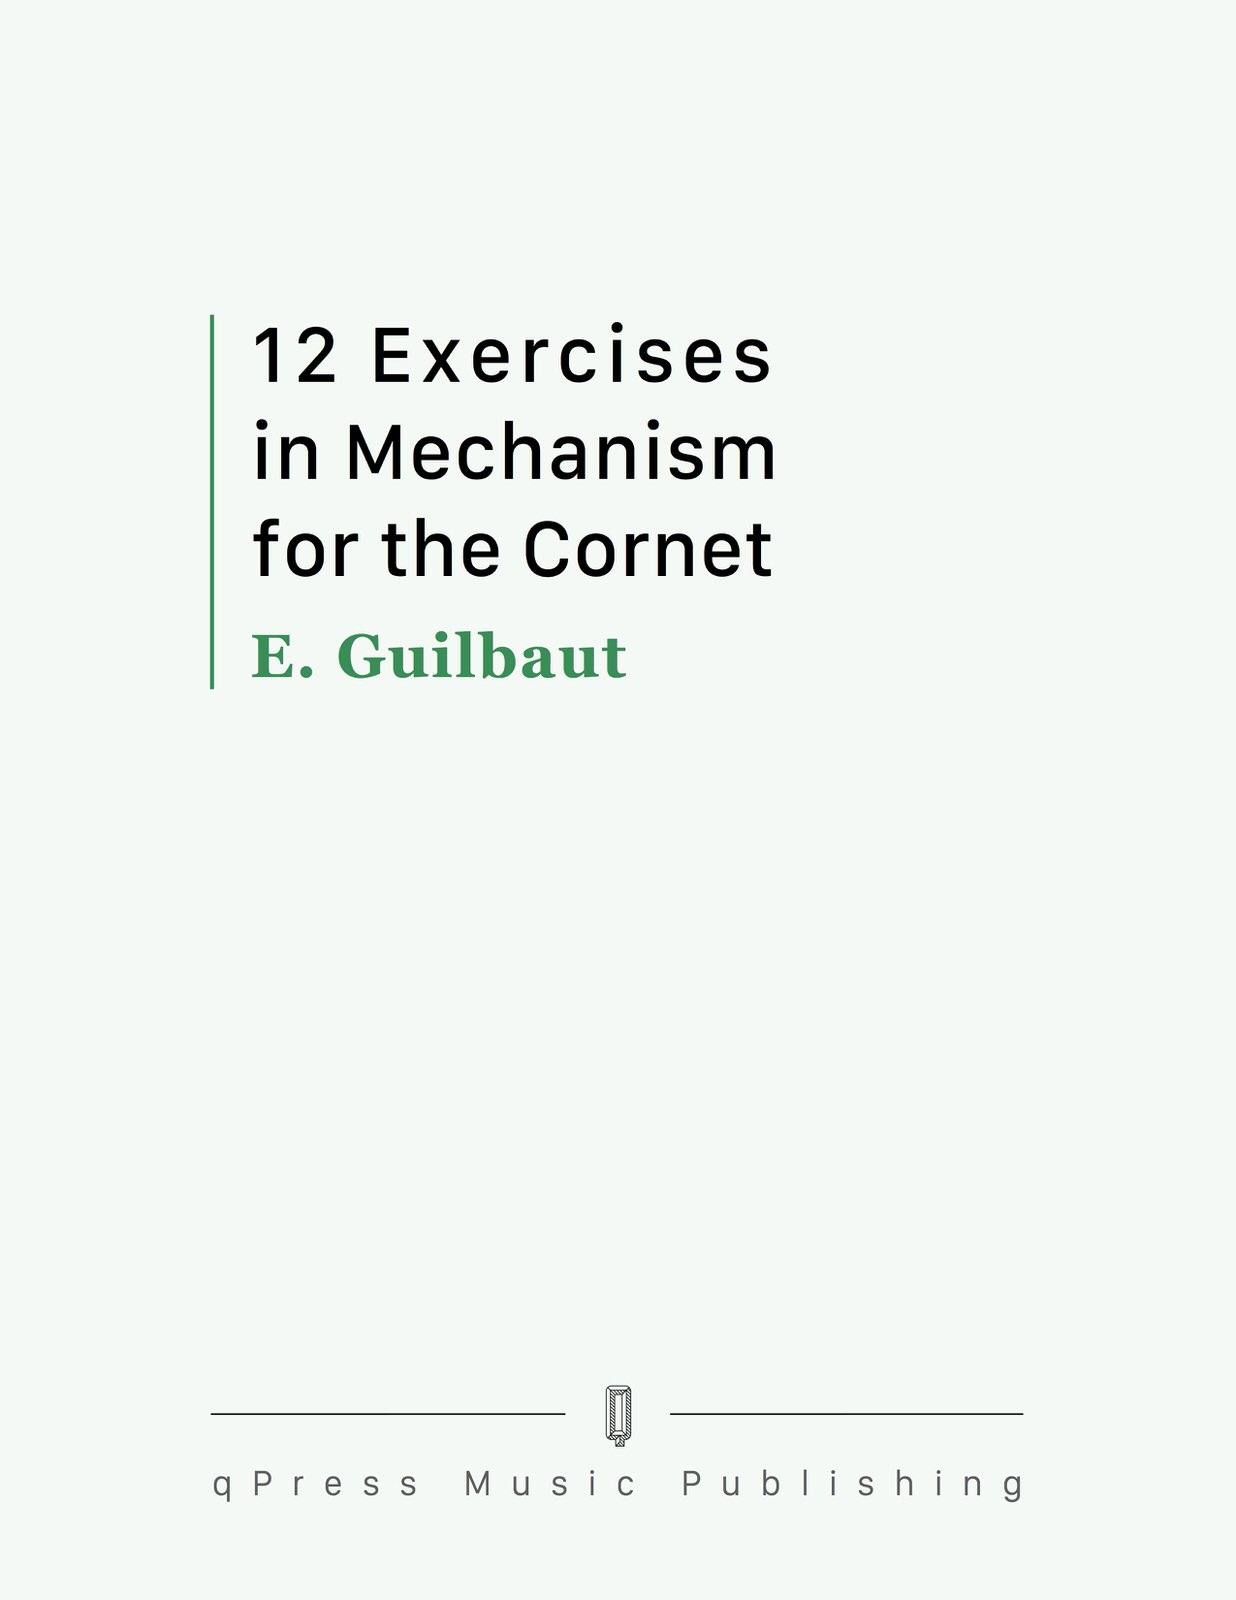 12 Exercises in Mechanism for the Cornet by Guilbaut, E. | qPress